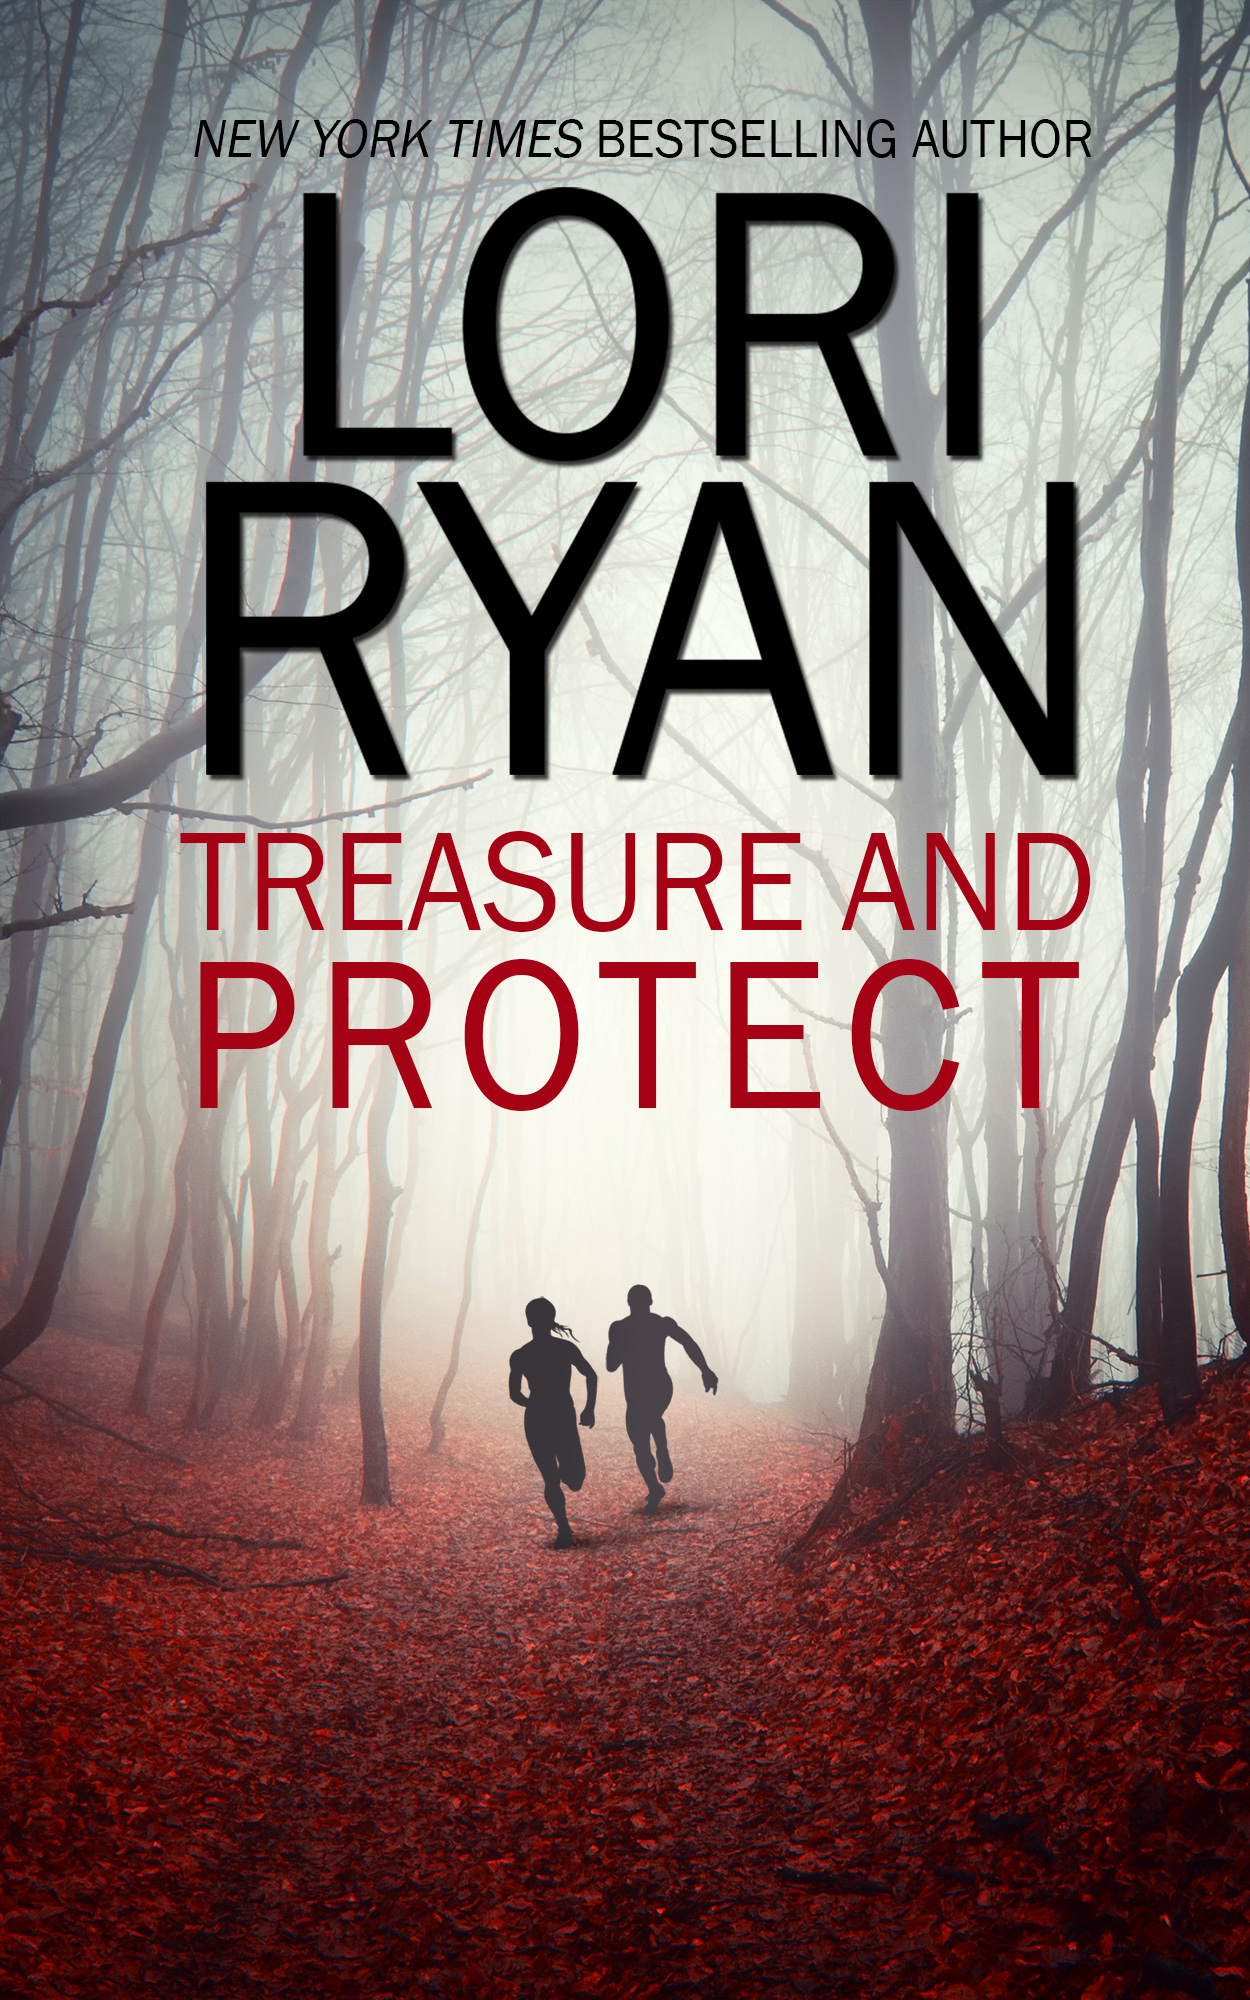 Treasure and Protect final for Barnes and Noble